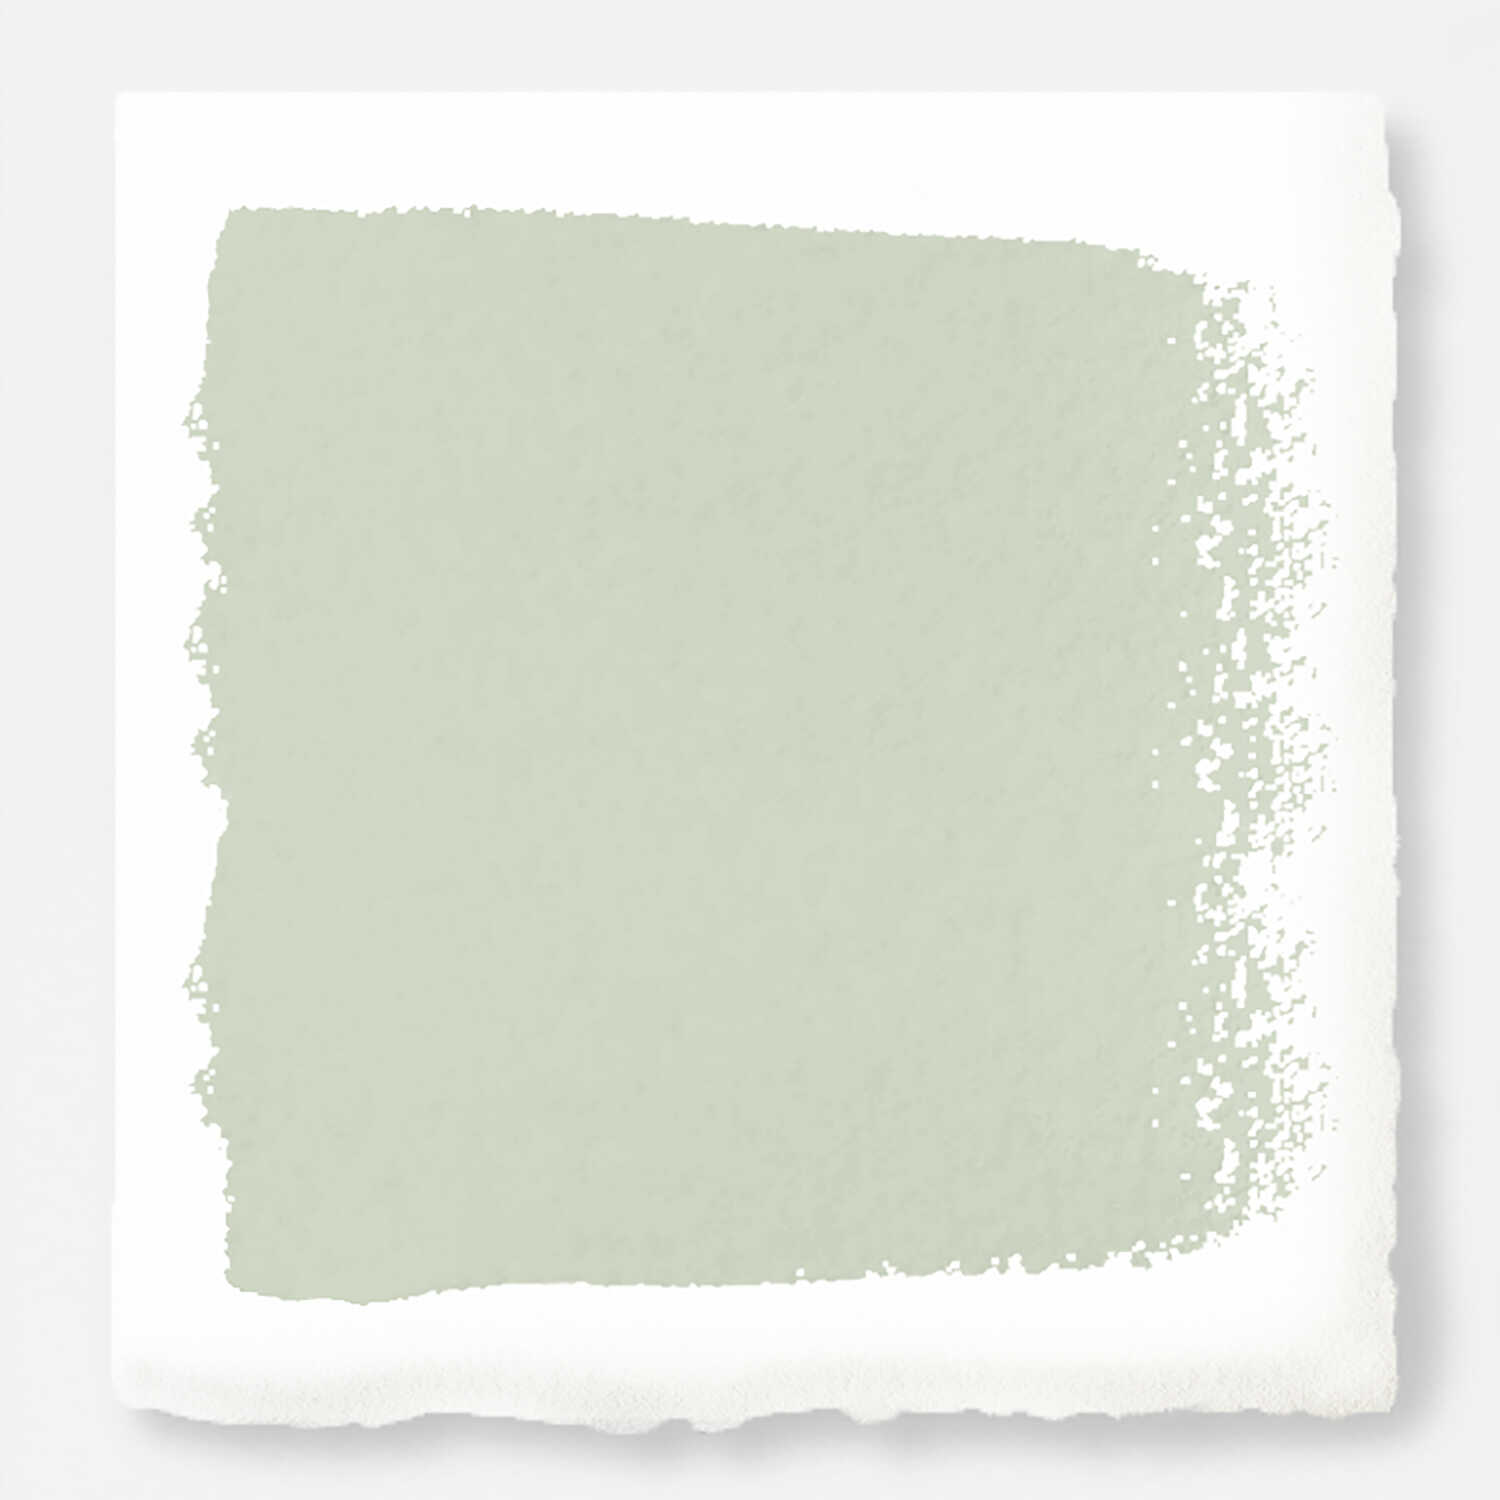 Magnolia Home  Semi-Gloss  Piece Of Cake  Exterior Paint and Primer  1 gal.